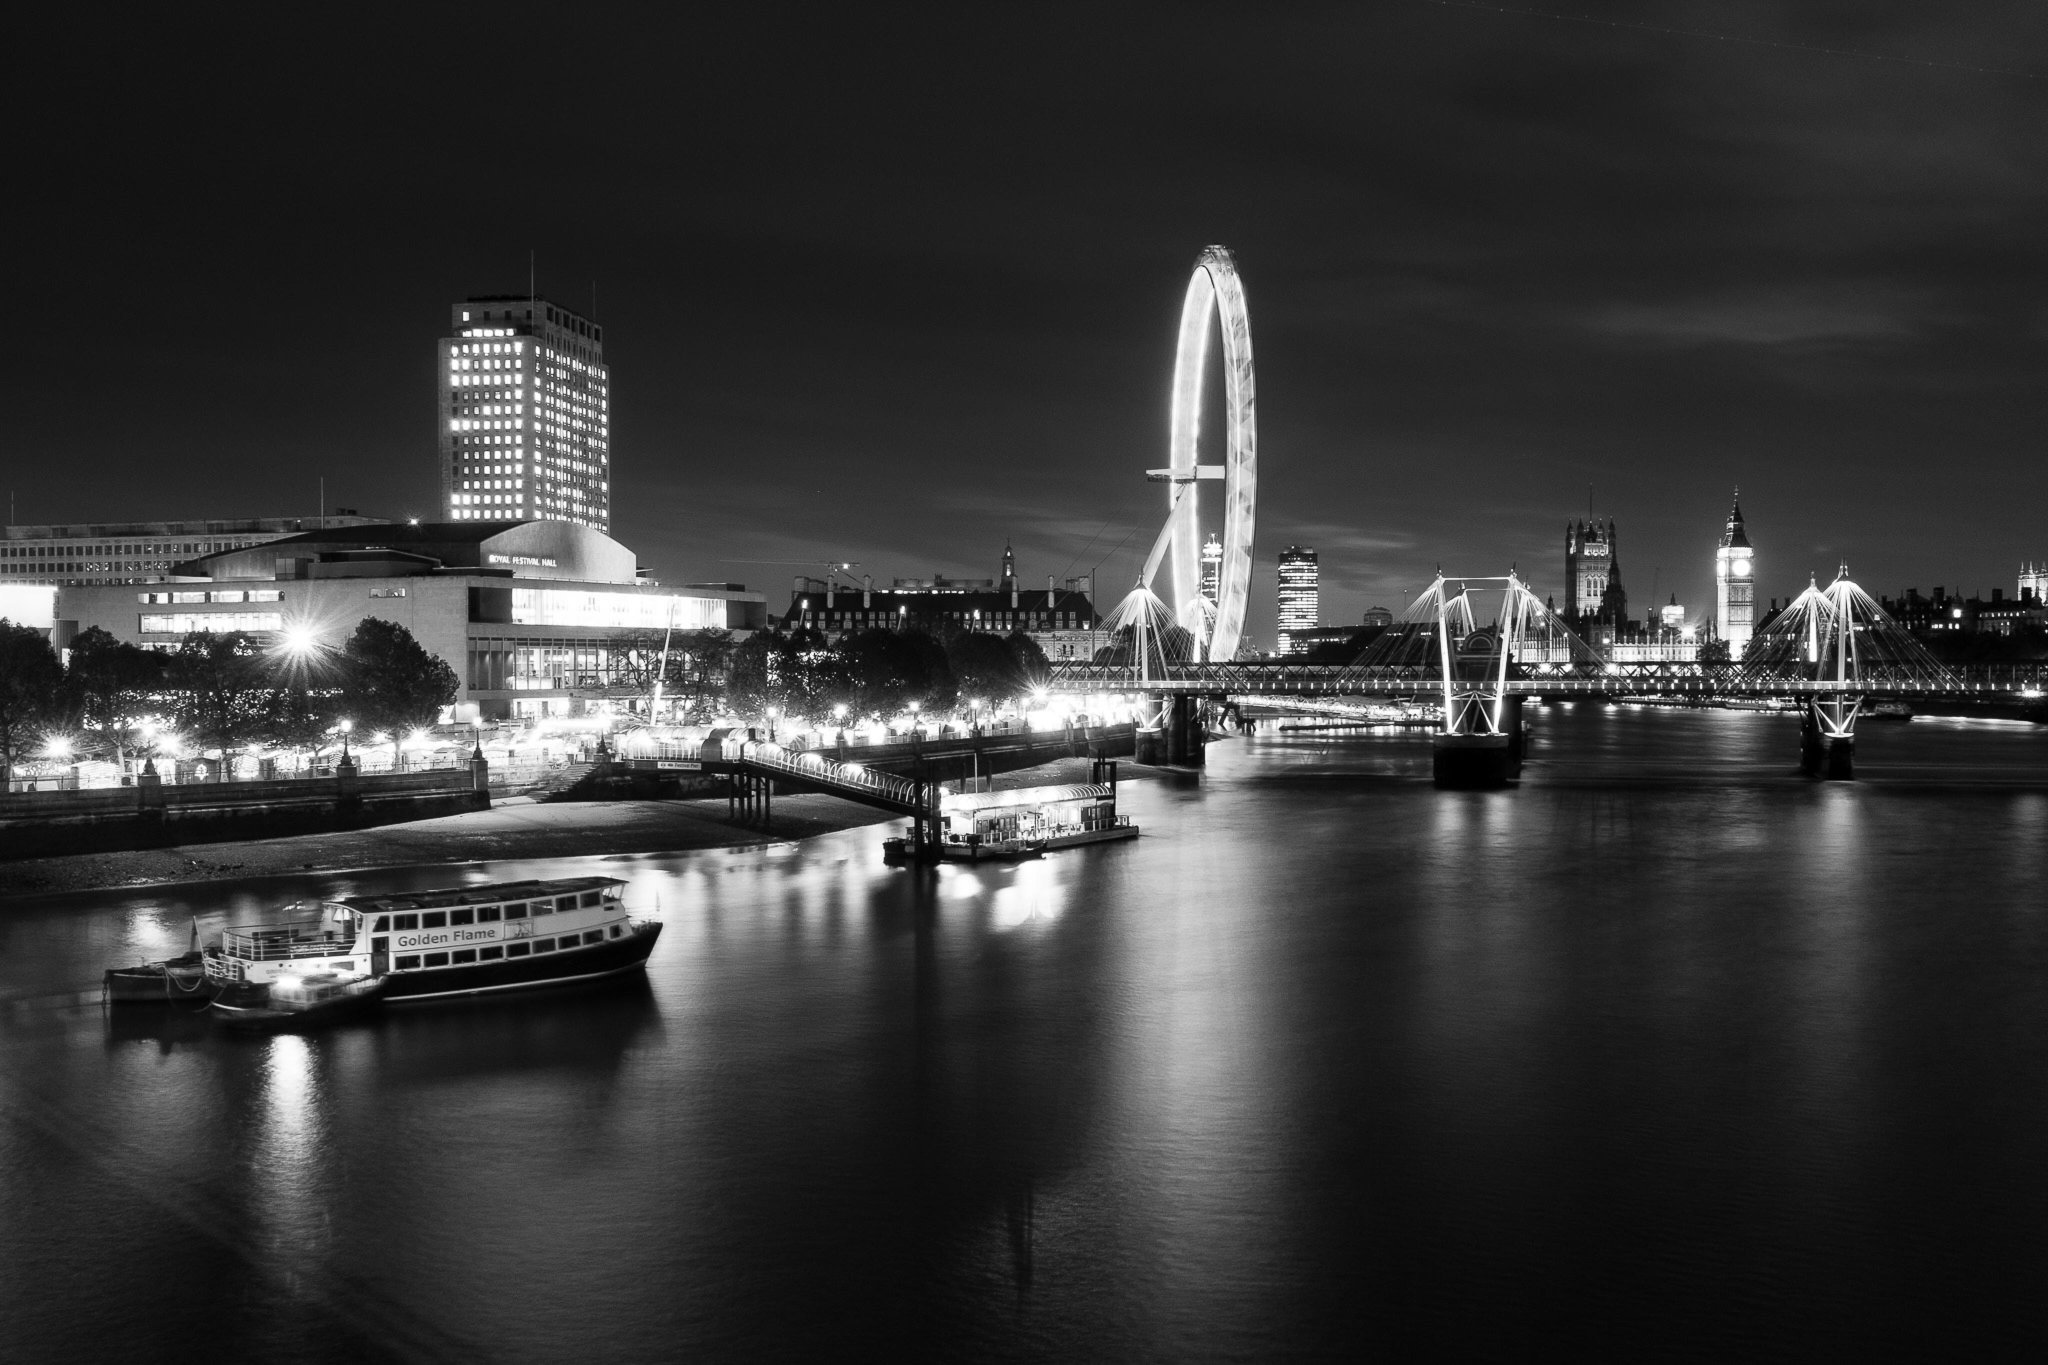 A dark and mysterious pic from @petecarr. Have you got any similarly moody pictures of London to share? #LoveLondon http://t.co/DpuQ6NGvPv